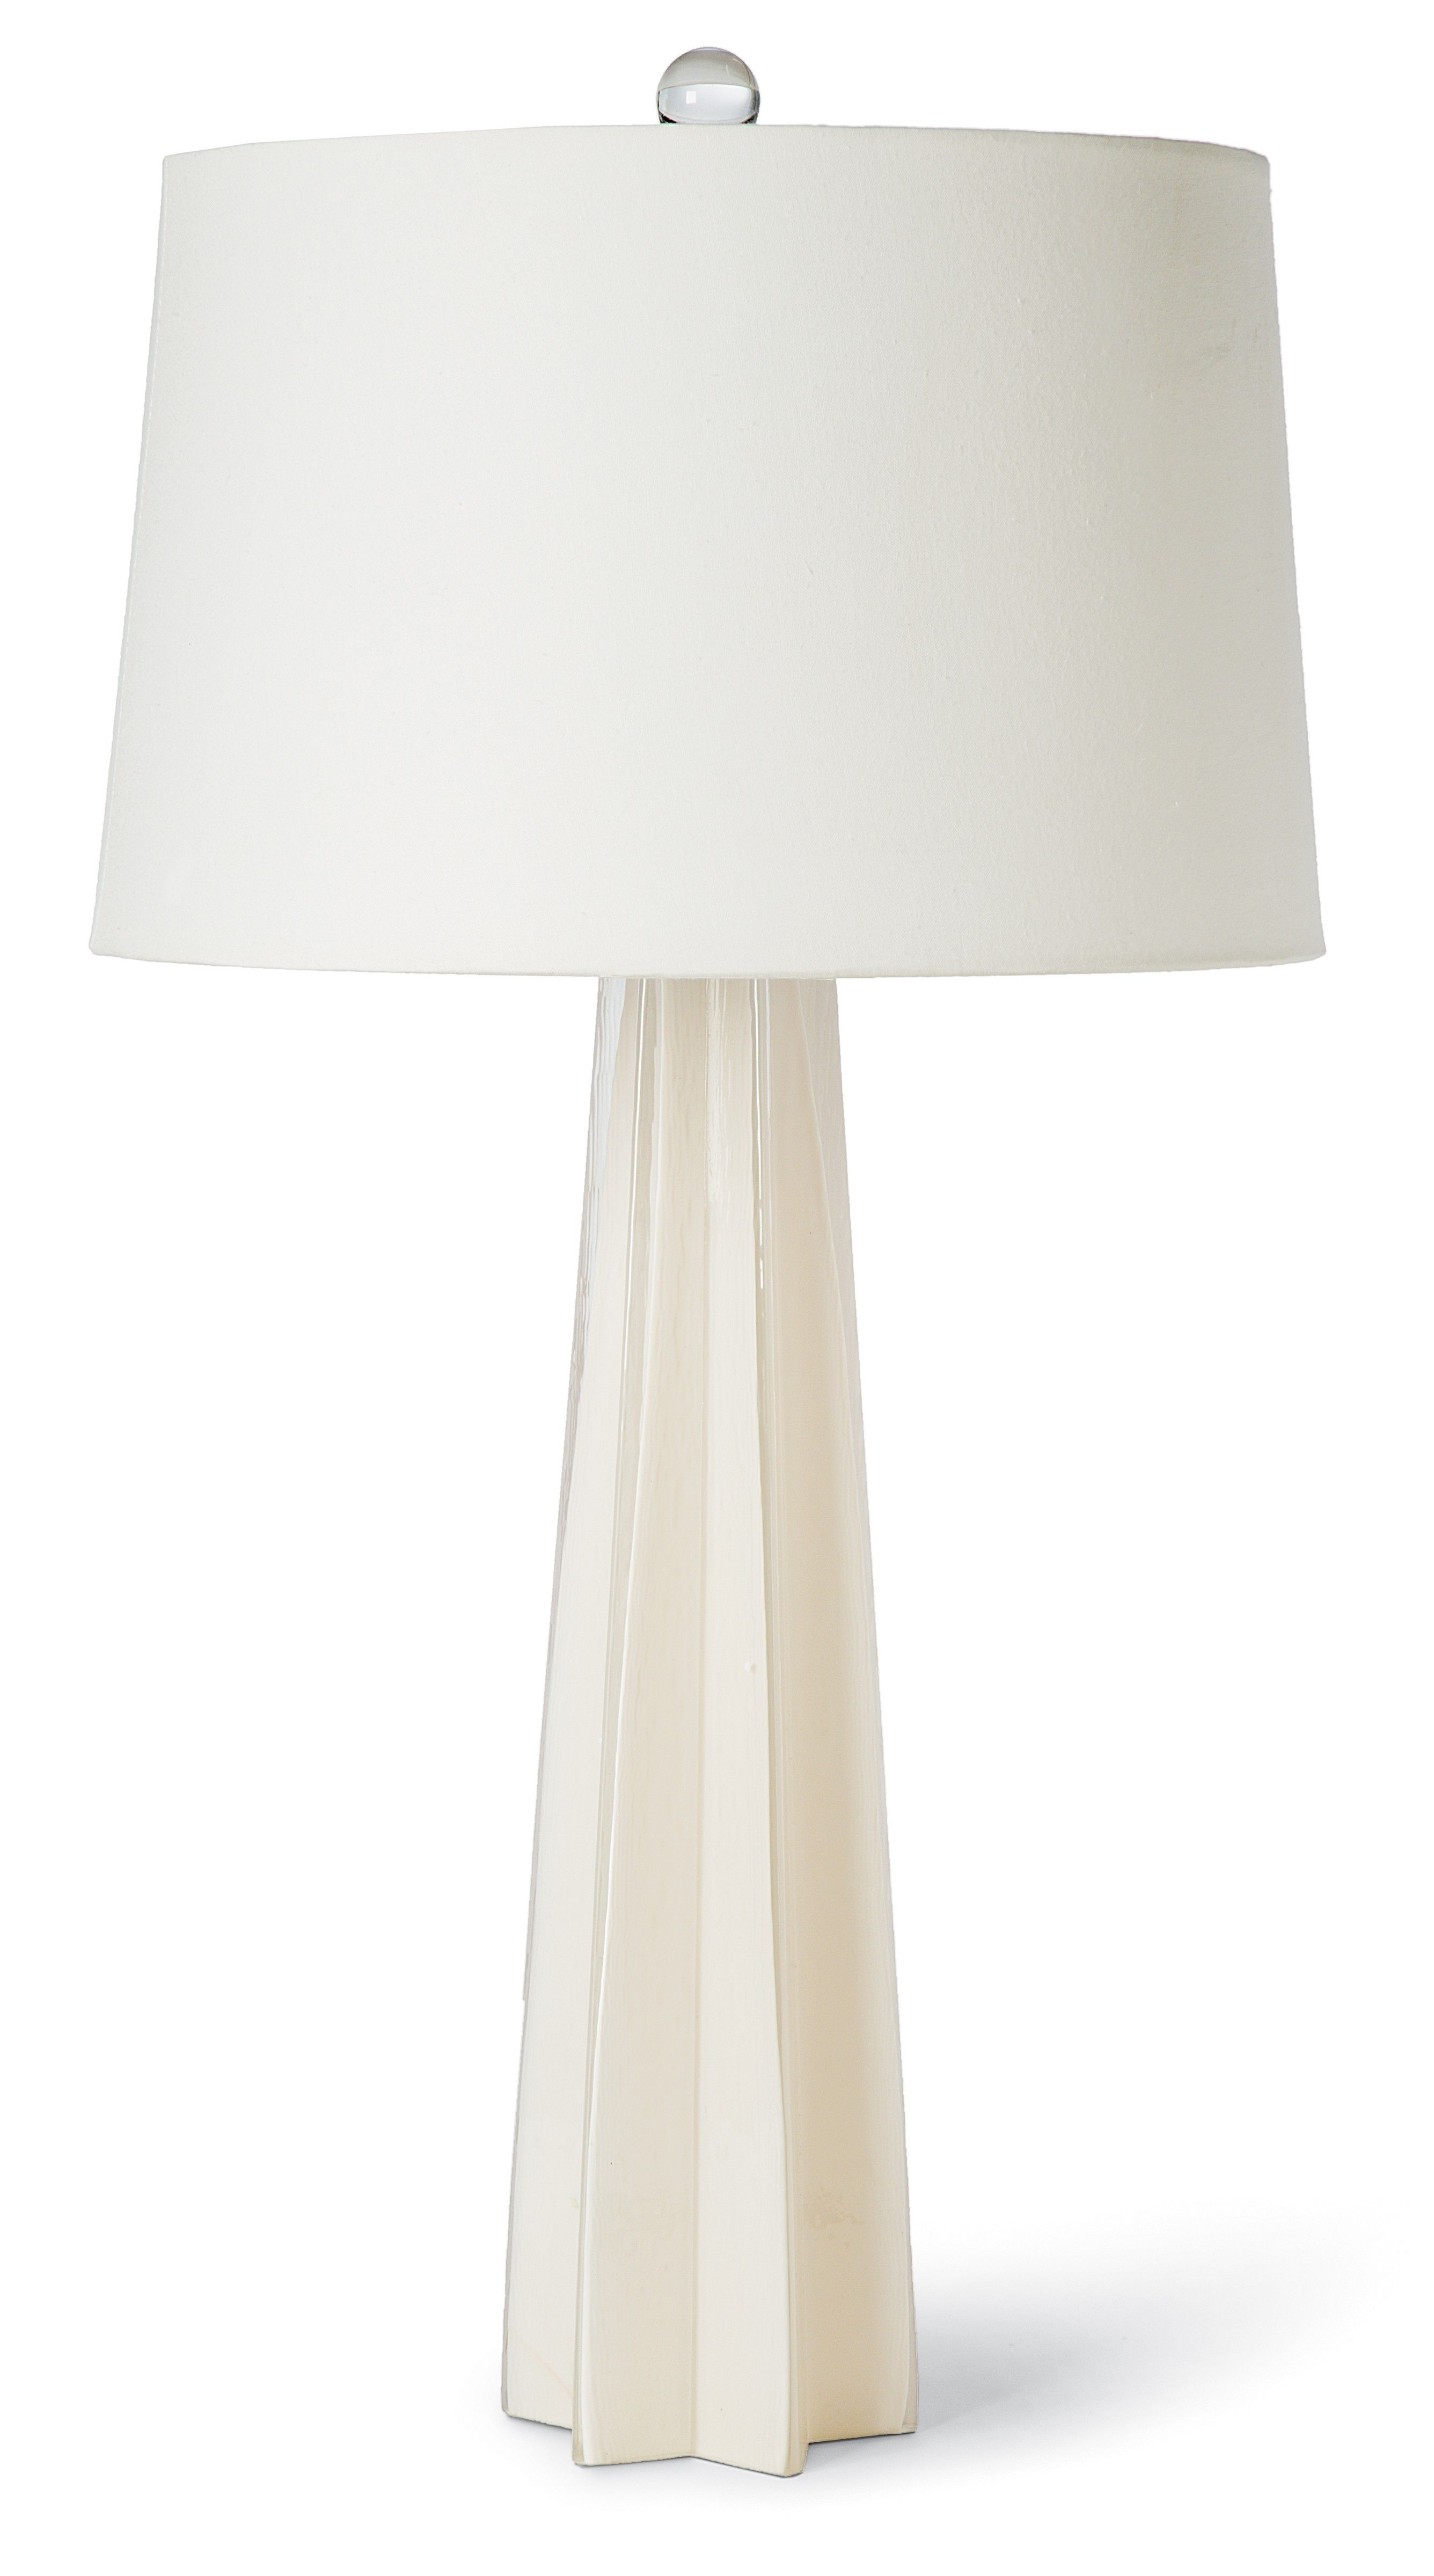 Klara Table Lamp In 2020 White Table Lamp Contemporary Table